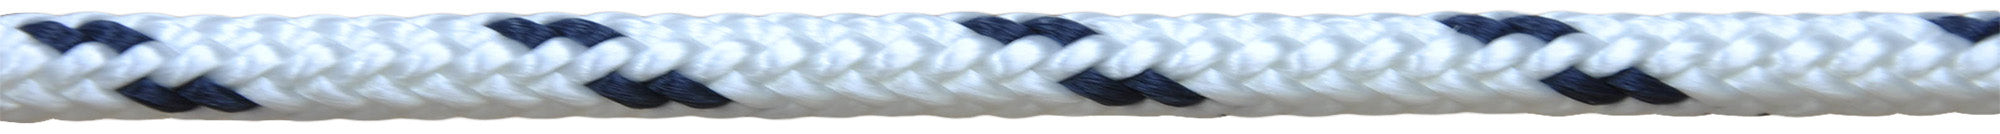 "RLS Yacht Braid 1/4"" x 600' (6mm x 183m) - RIGBY Technologies"